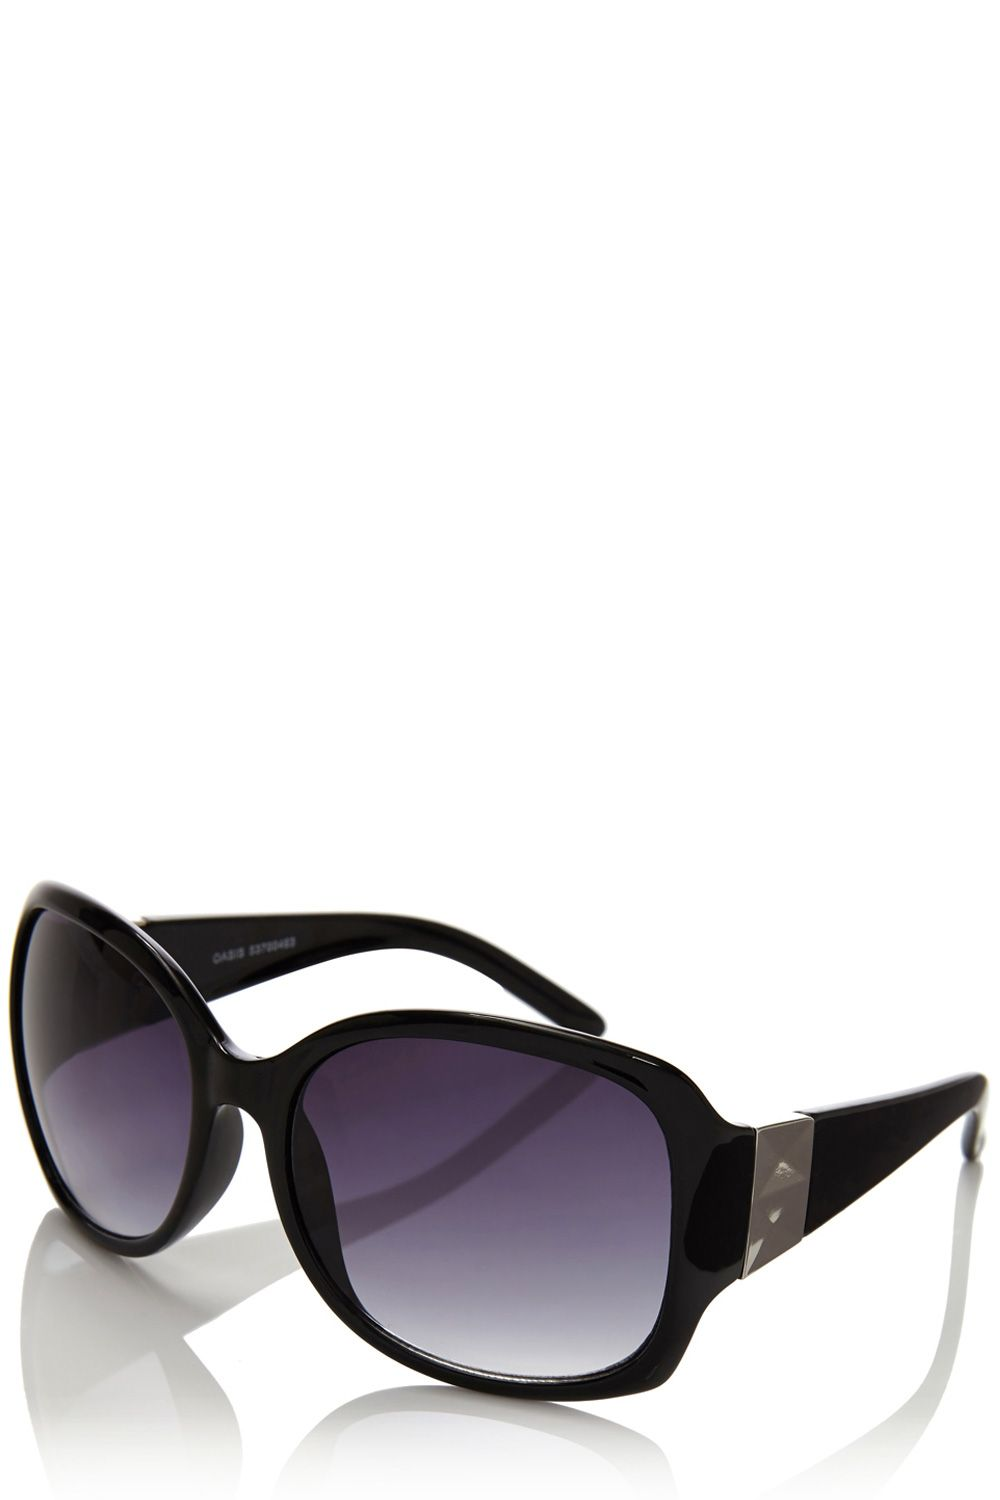 Pyramid arm sunglasses